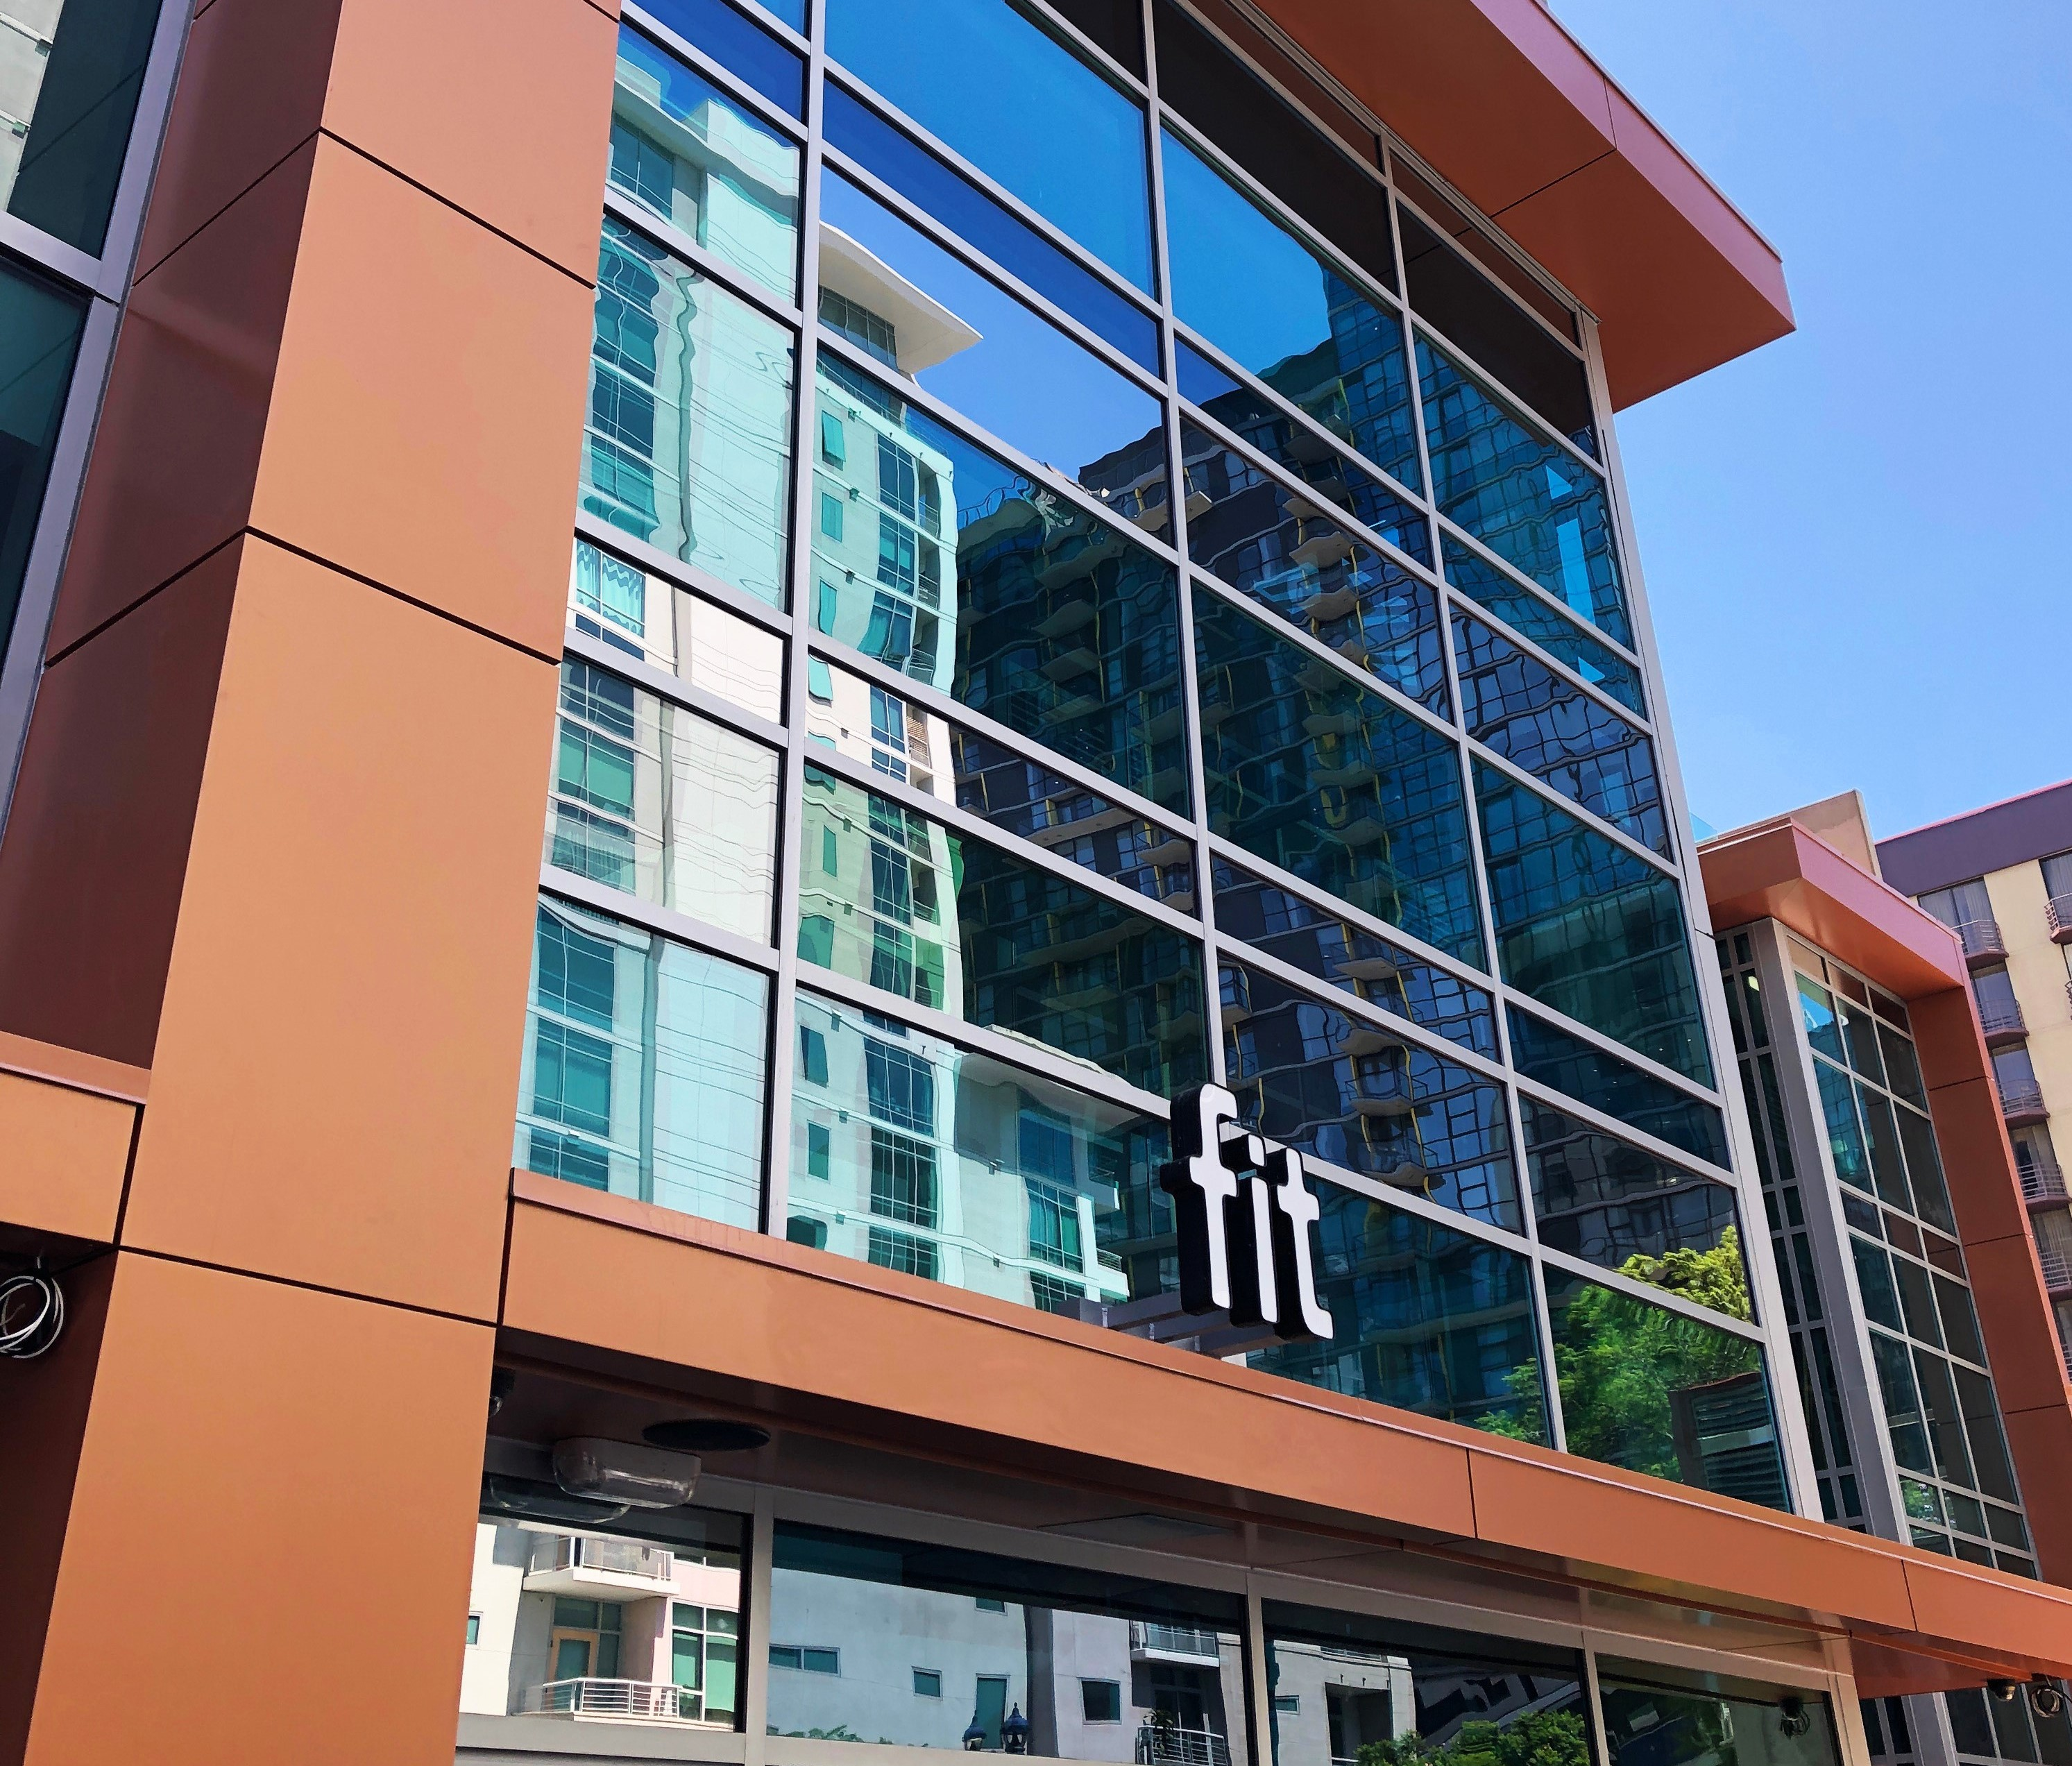 Fit Little Italy: A Place Where Fitness Meets Luxury